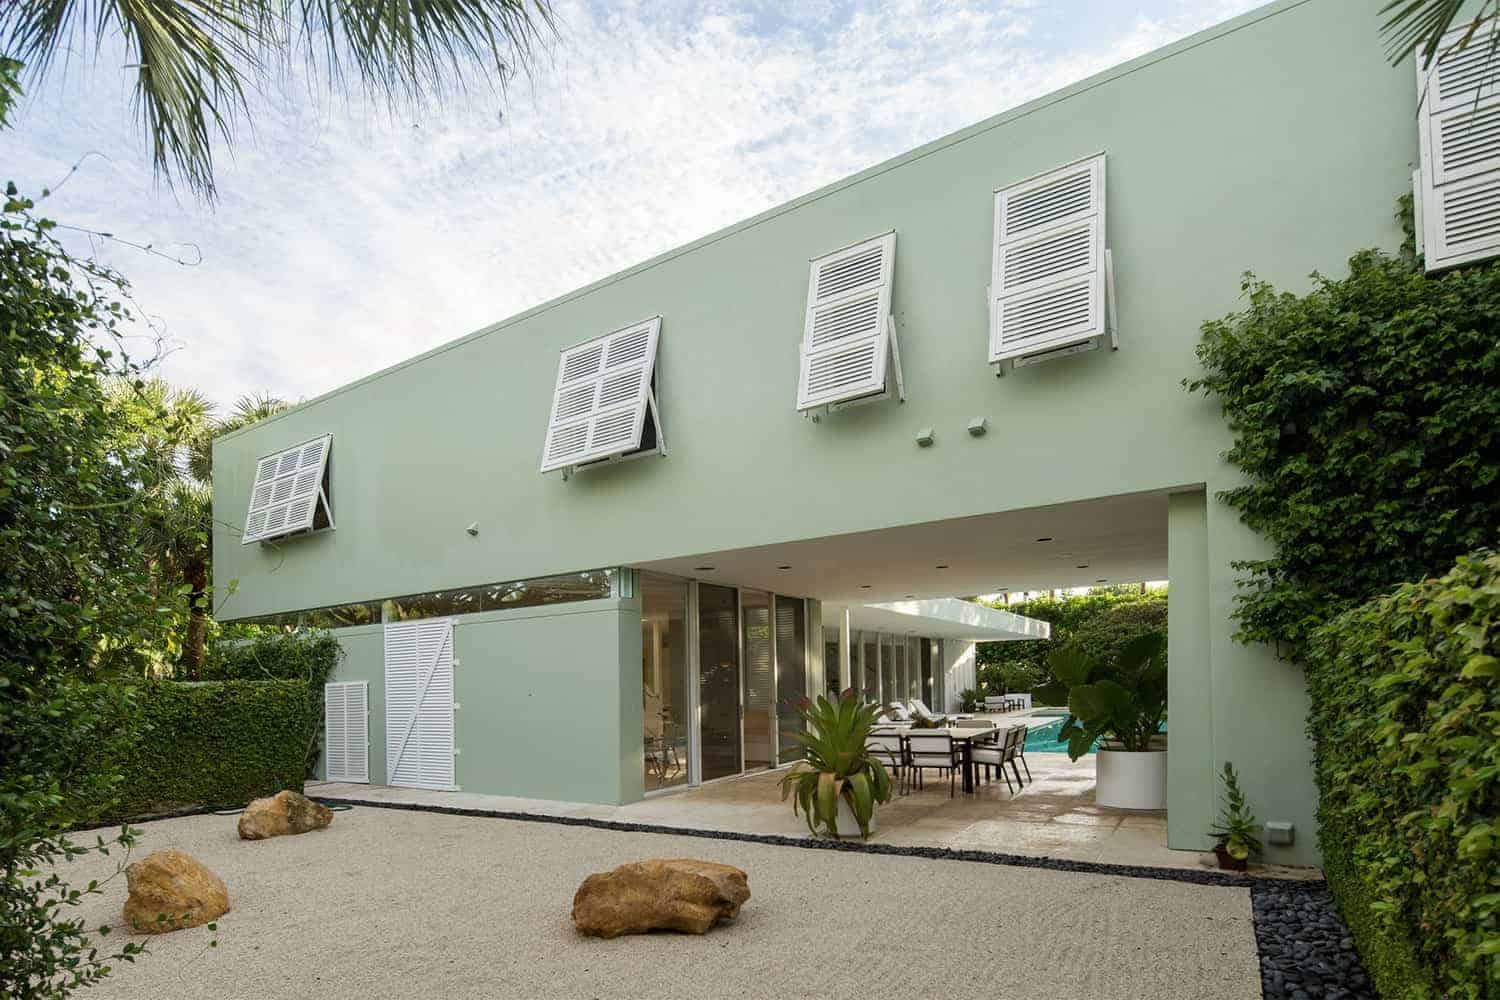 Large modern home with a green exterior. It features great outdoor amenities such as outdoor dining, a swimming pool and sitting lounges.